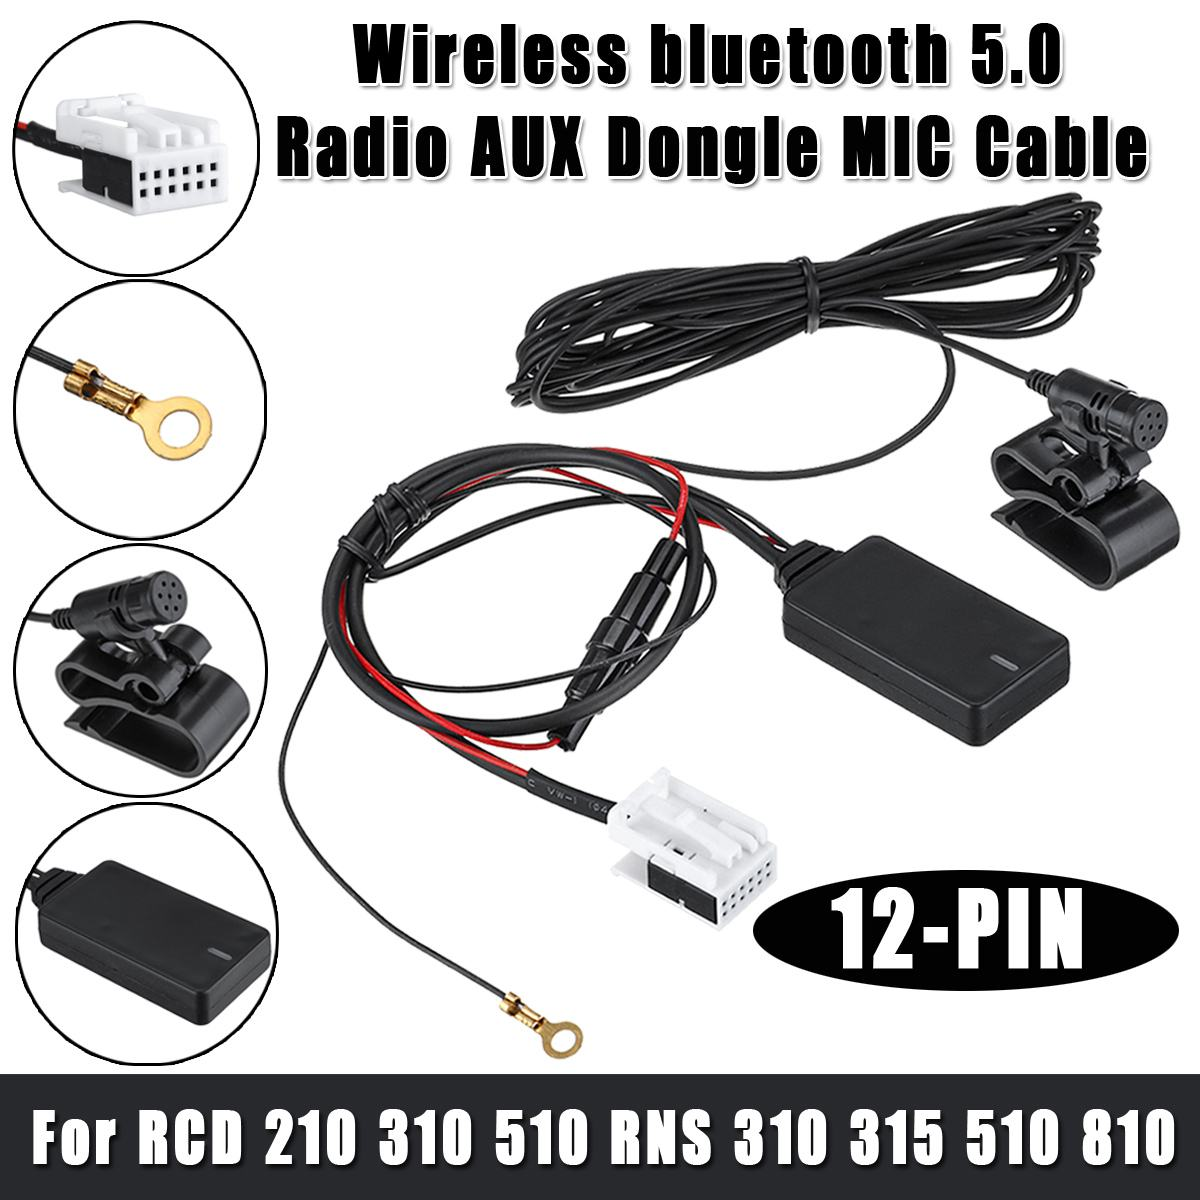 Car Radio Wireless Bluetooth AUX Line Handsfree Cable AUX-IN Audio Adapter For VW For Skoda RCD 210 310 510 RNS 310 315 510 810